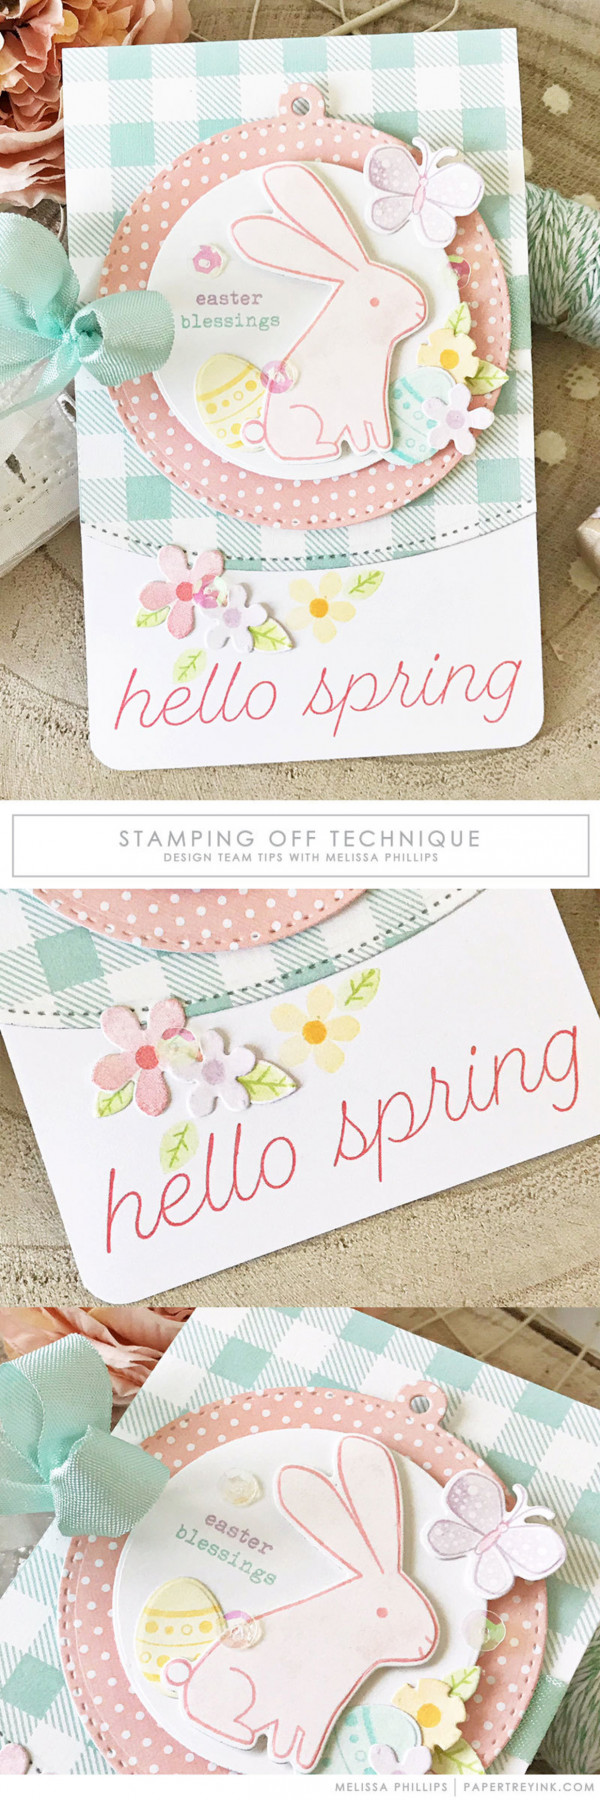 Technique: Stamping Off